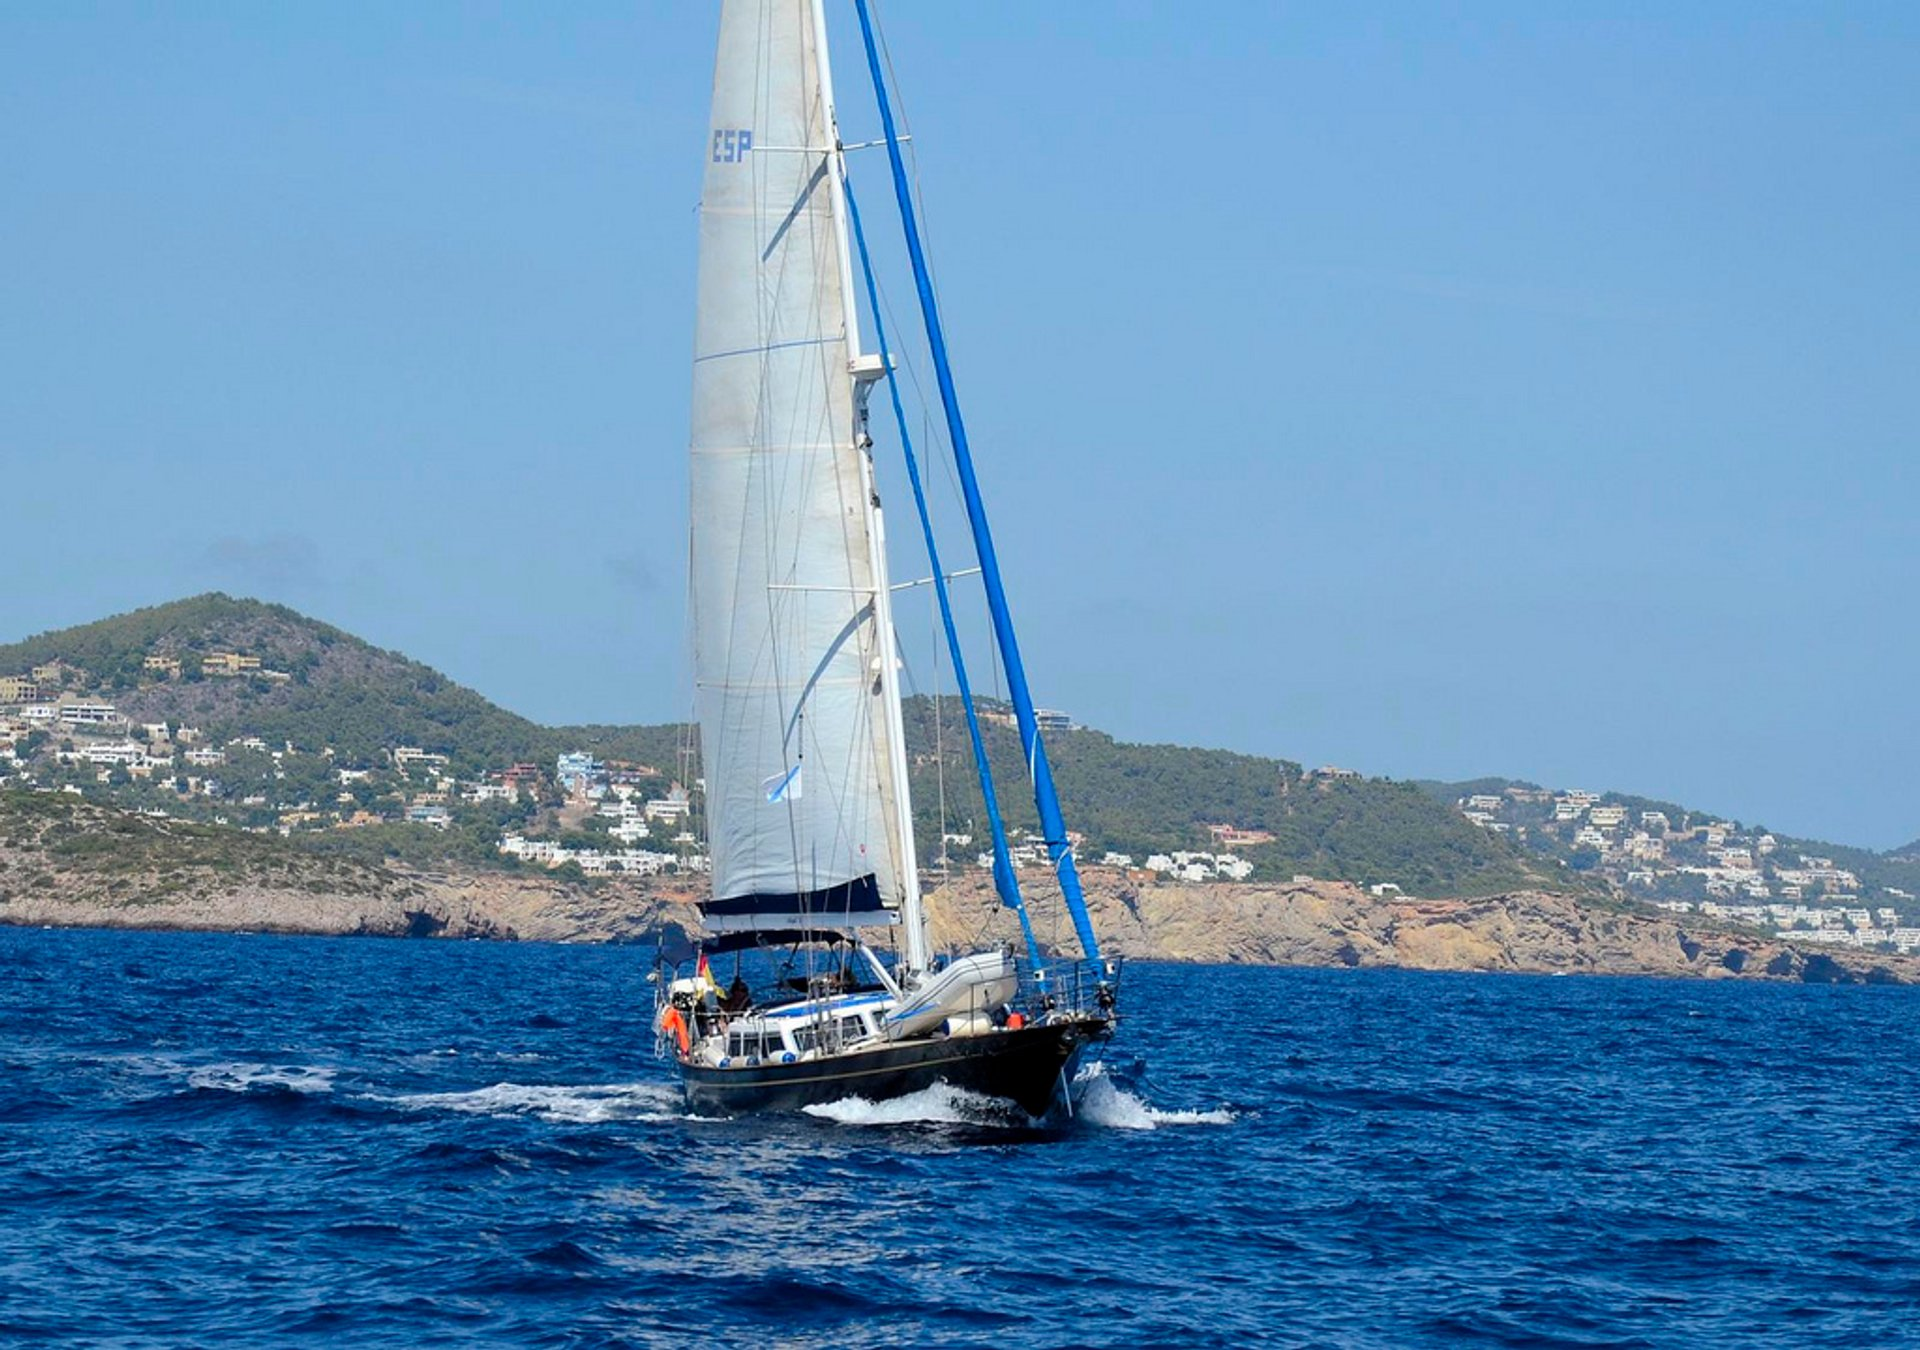 Yachting around Ibiza in Ibiza - Best Season 2020